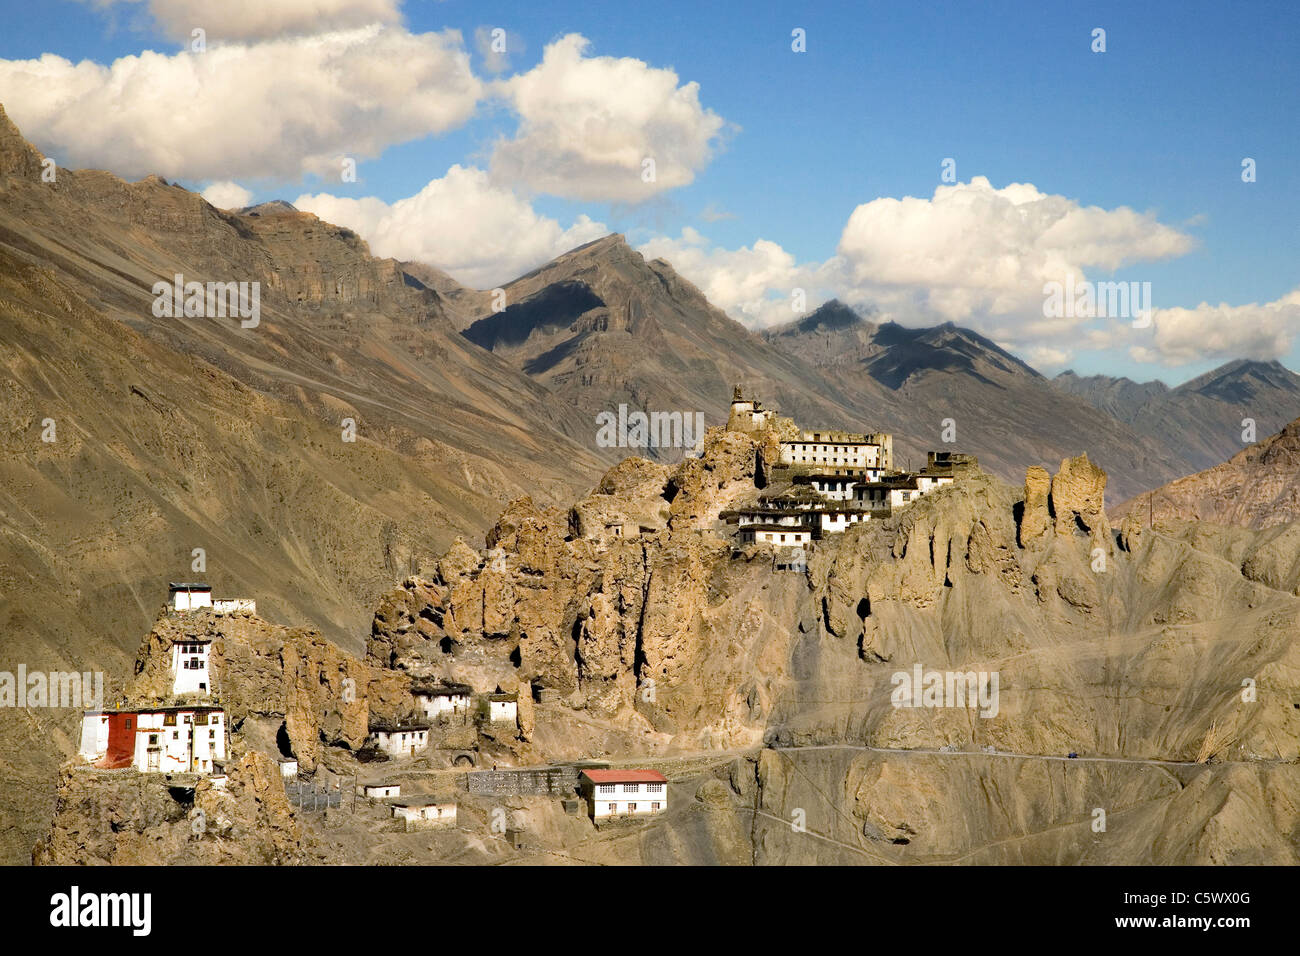 View of Dhankar village (3890m), monastery and fort. Spiti valley, Himachal Pradesh. India, Asia. - Stock Image